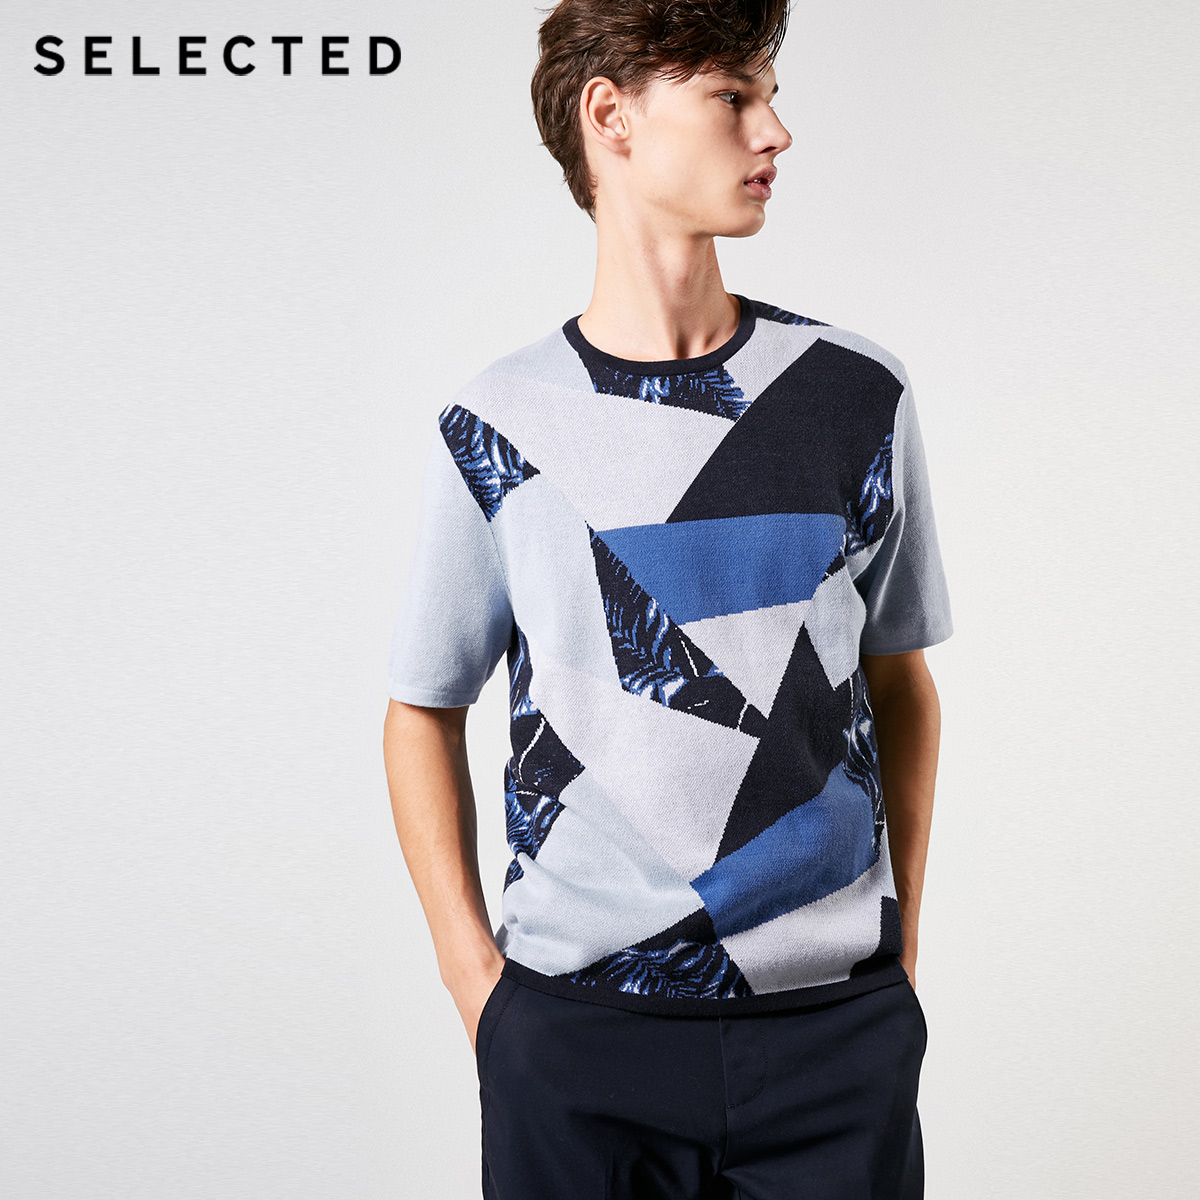 SELECTED 100% Cotton Assorted Colors Sweater Men's Geometry Short-sleeved Knitted Shirt S | 419124501